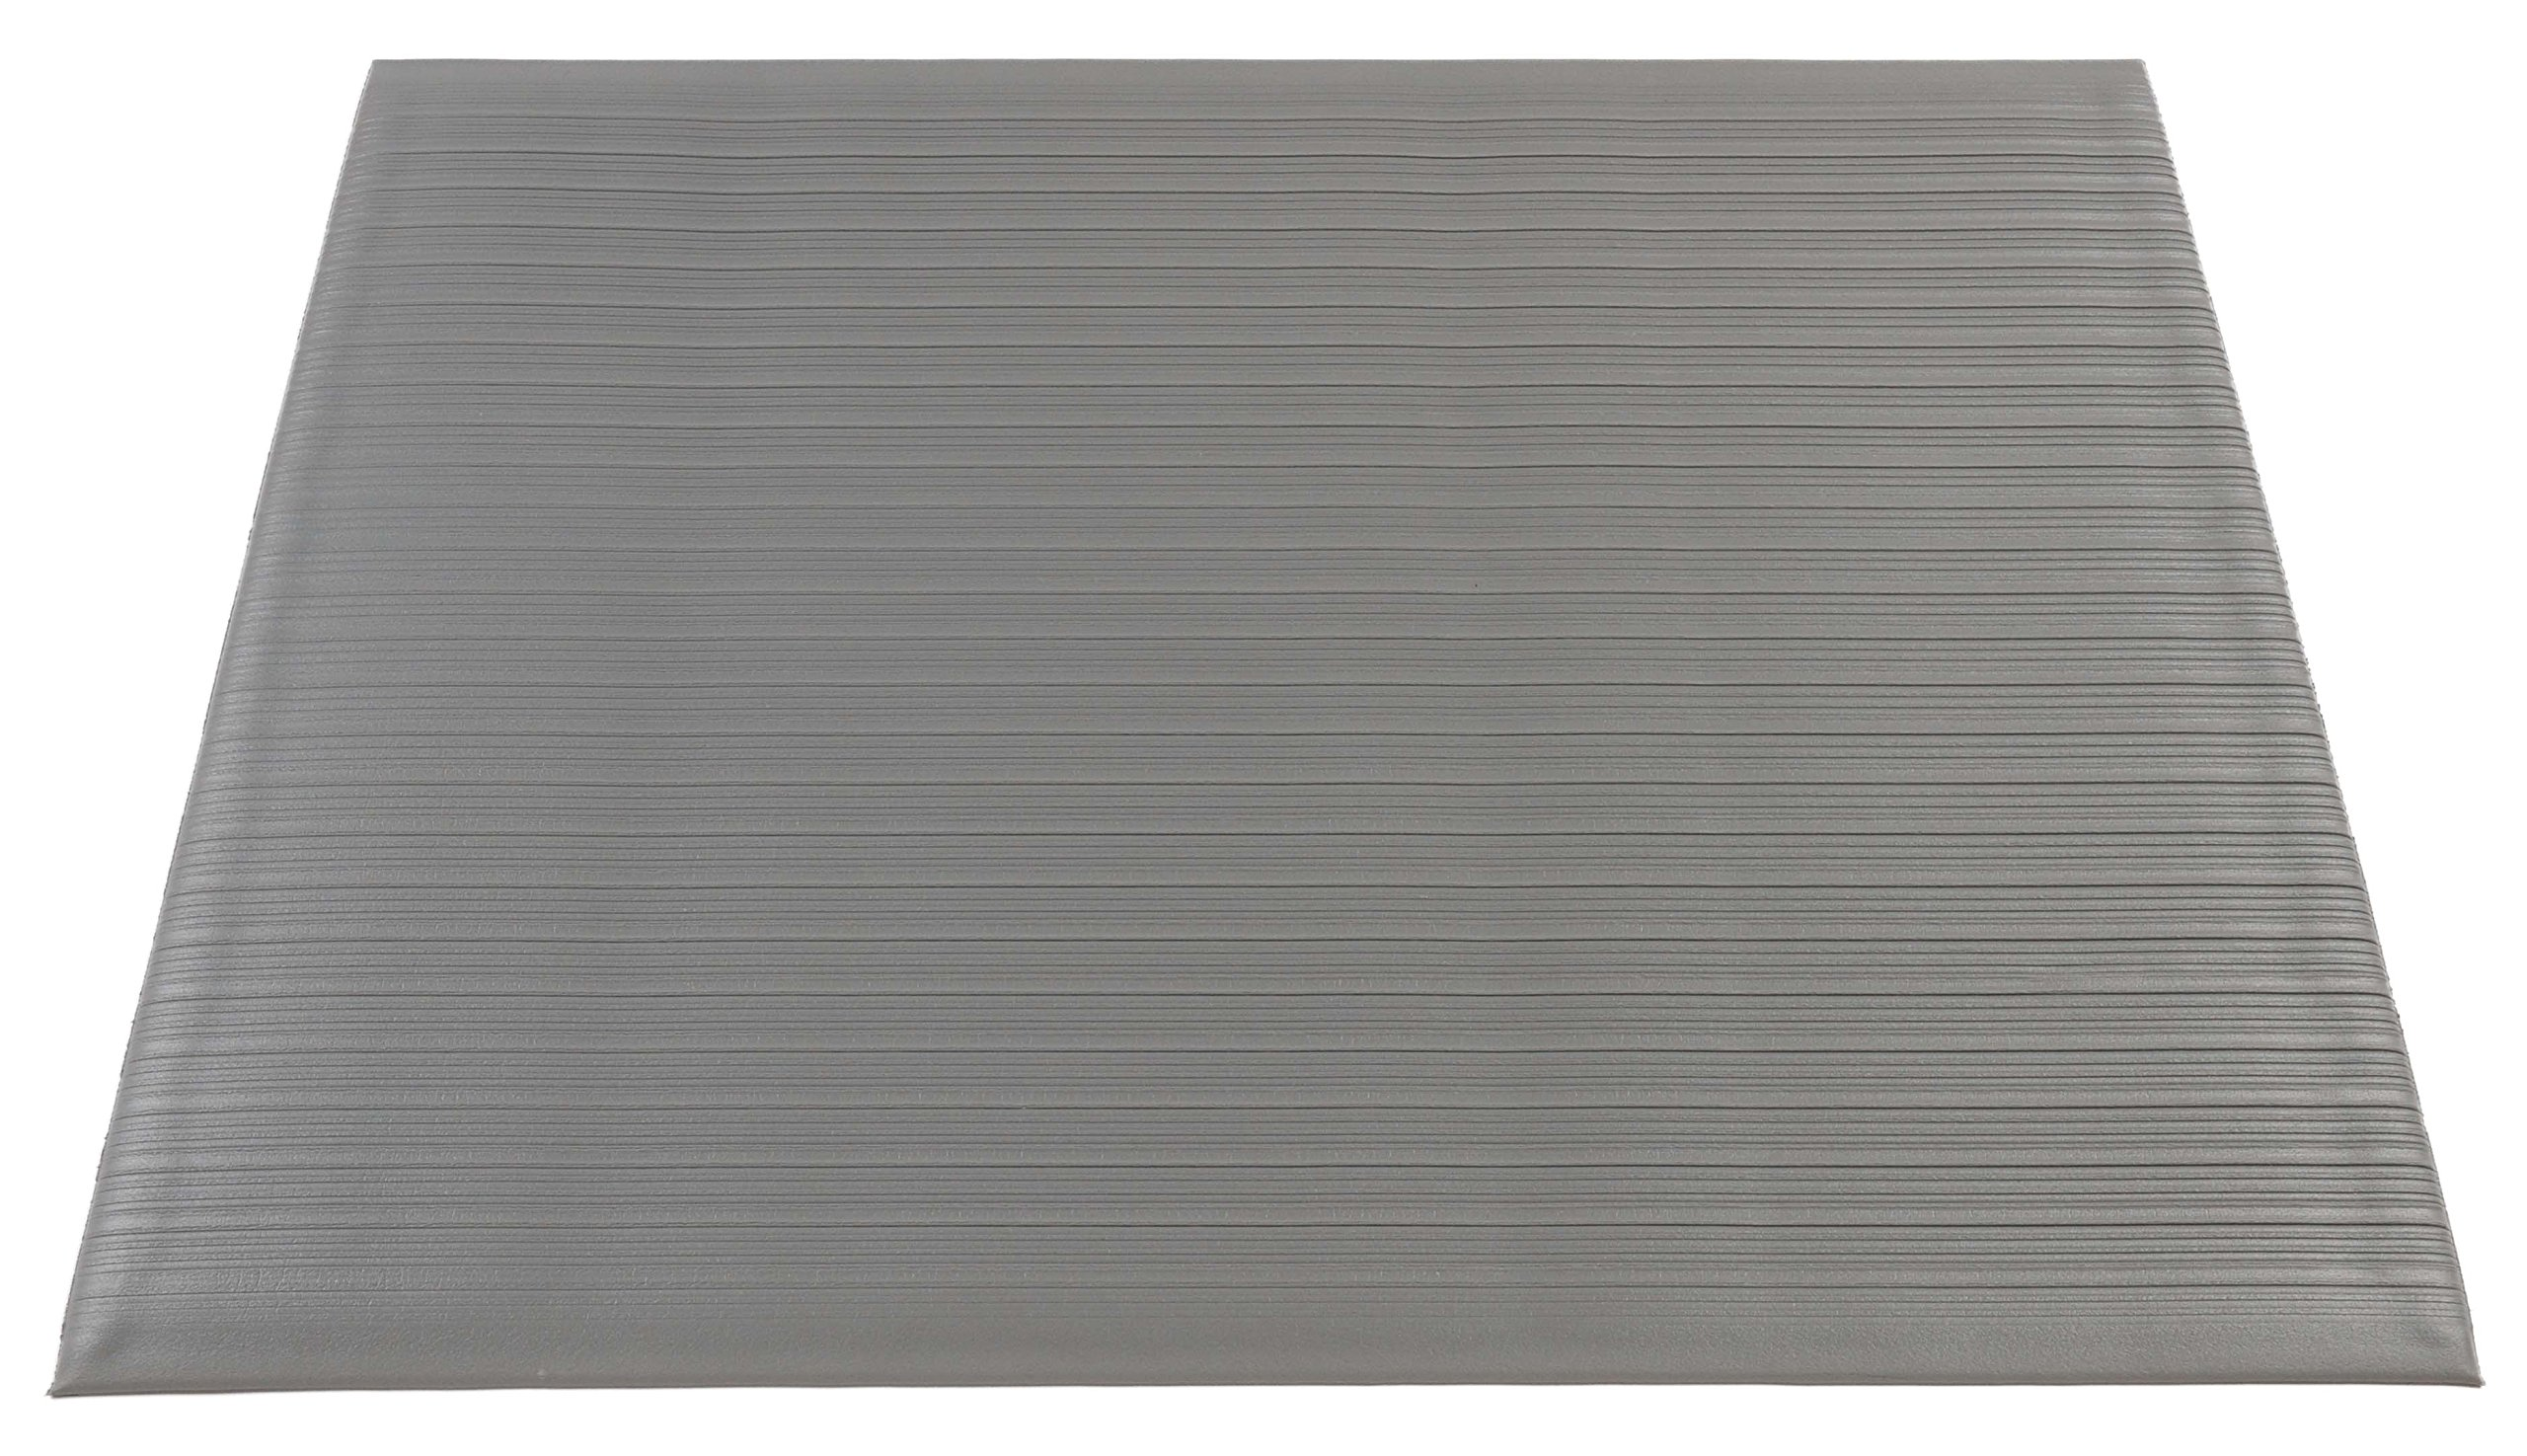 Americo Manufacturing 7106034 3/8'' Eversoft Standard Anti-Fatigue Indoor Matting with Ribbed Surface, 3' x 4', Gray